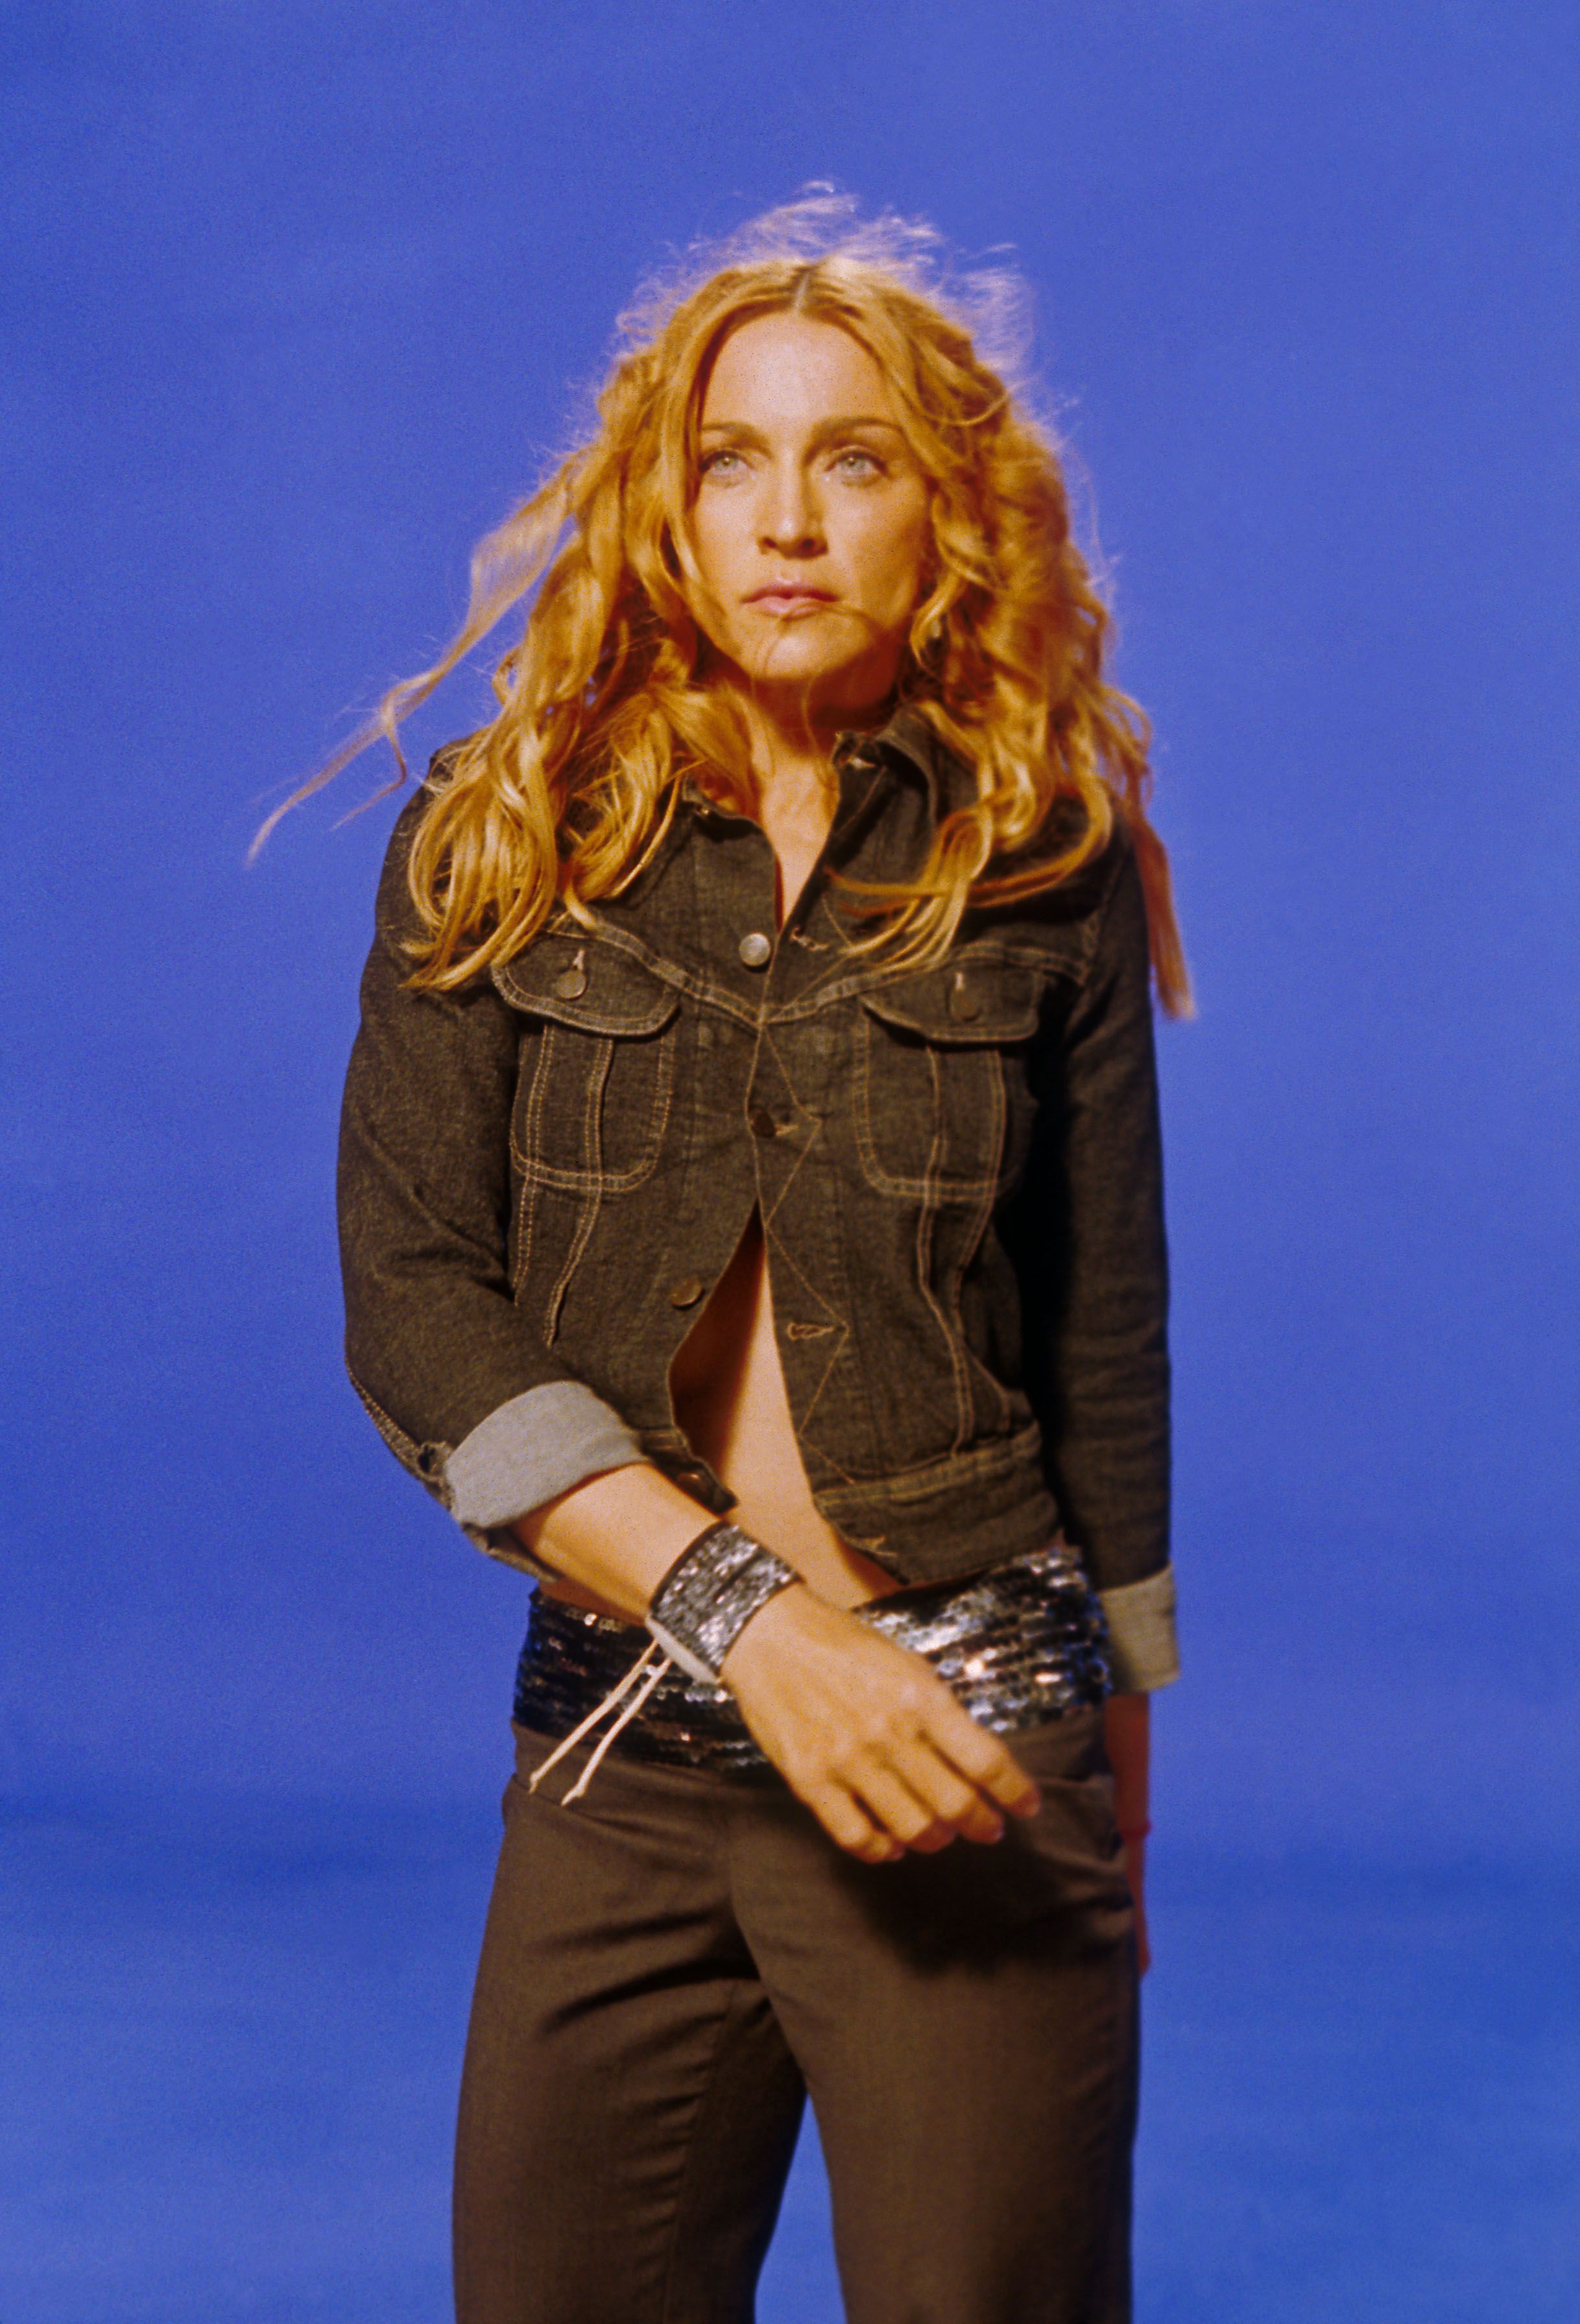 """Madonna on the set of her """"Ray of Light""""video on September 12, 1998 